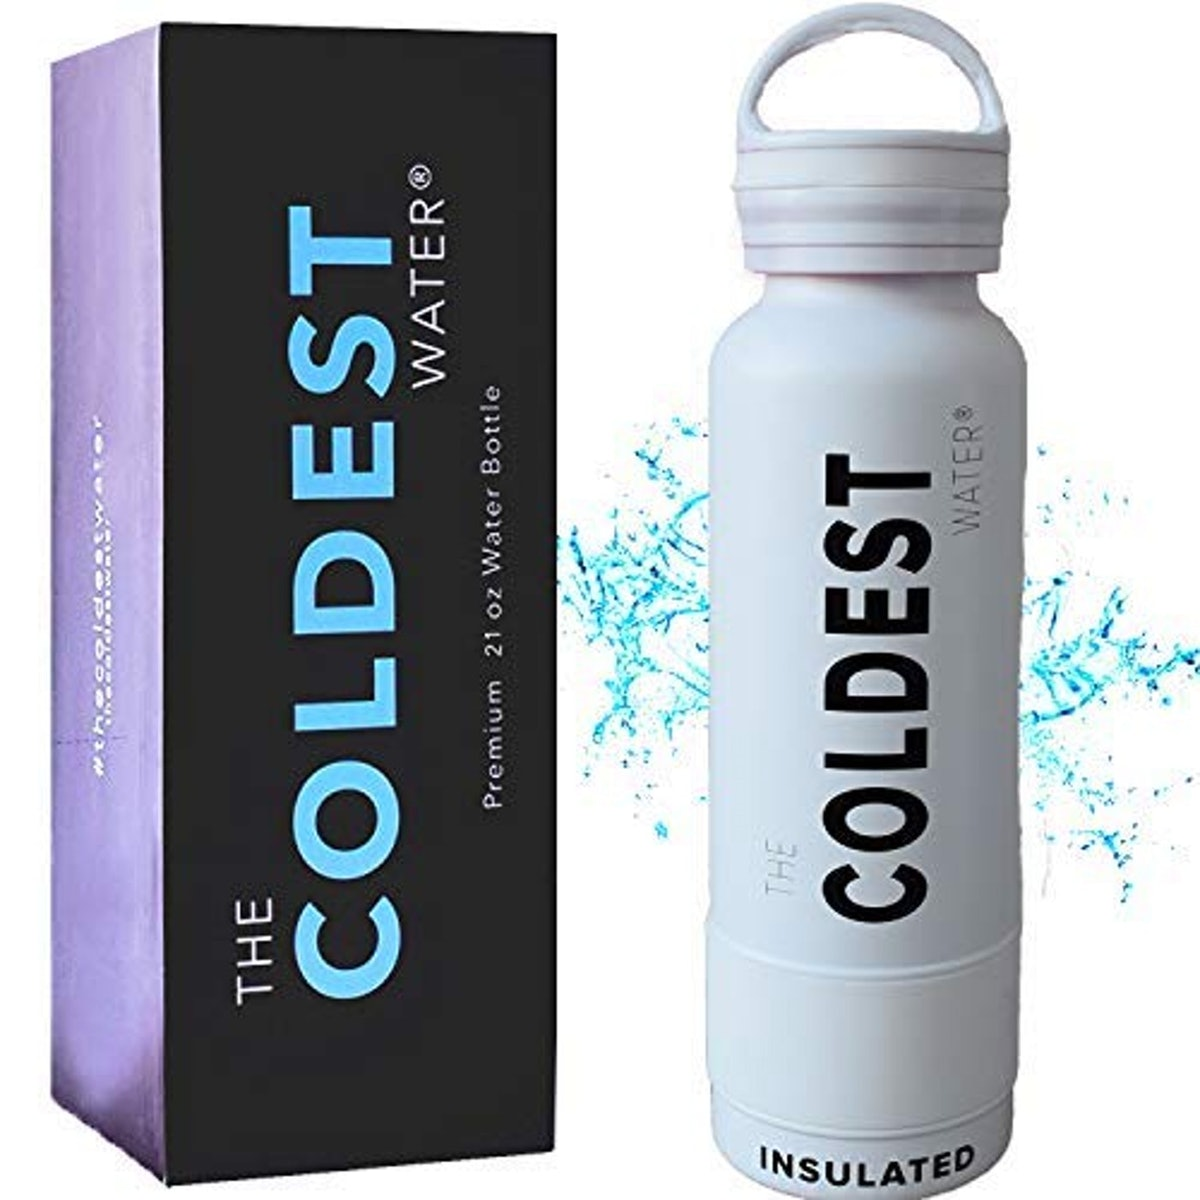 The Coldest Water Insulated Bottle